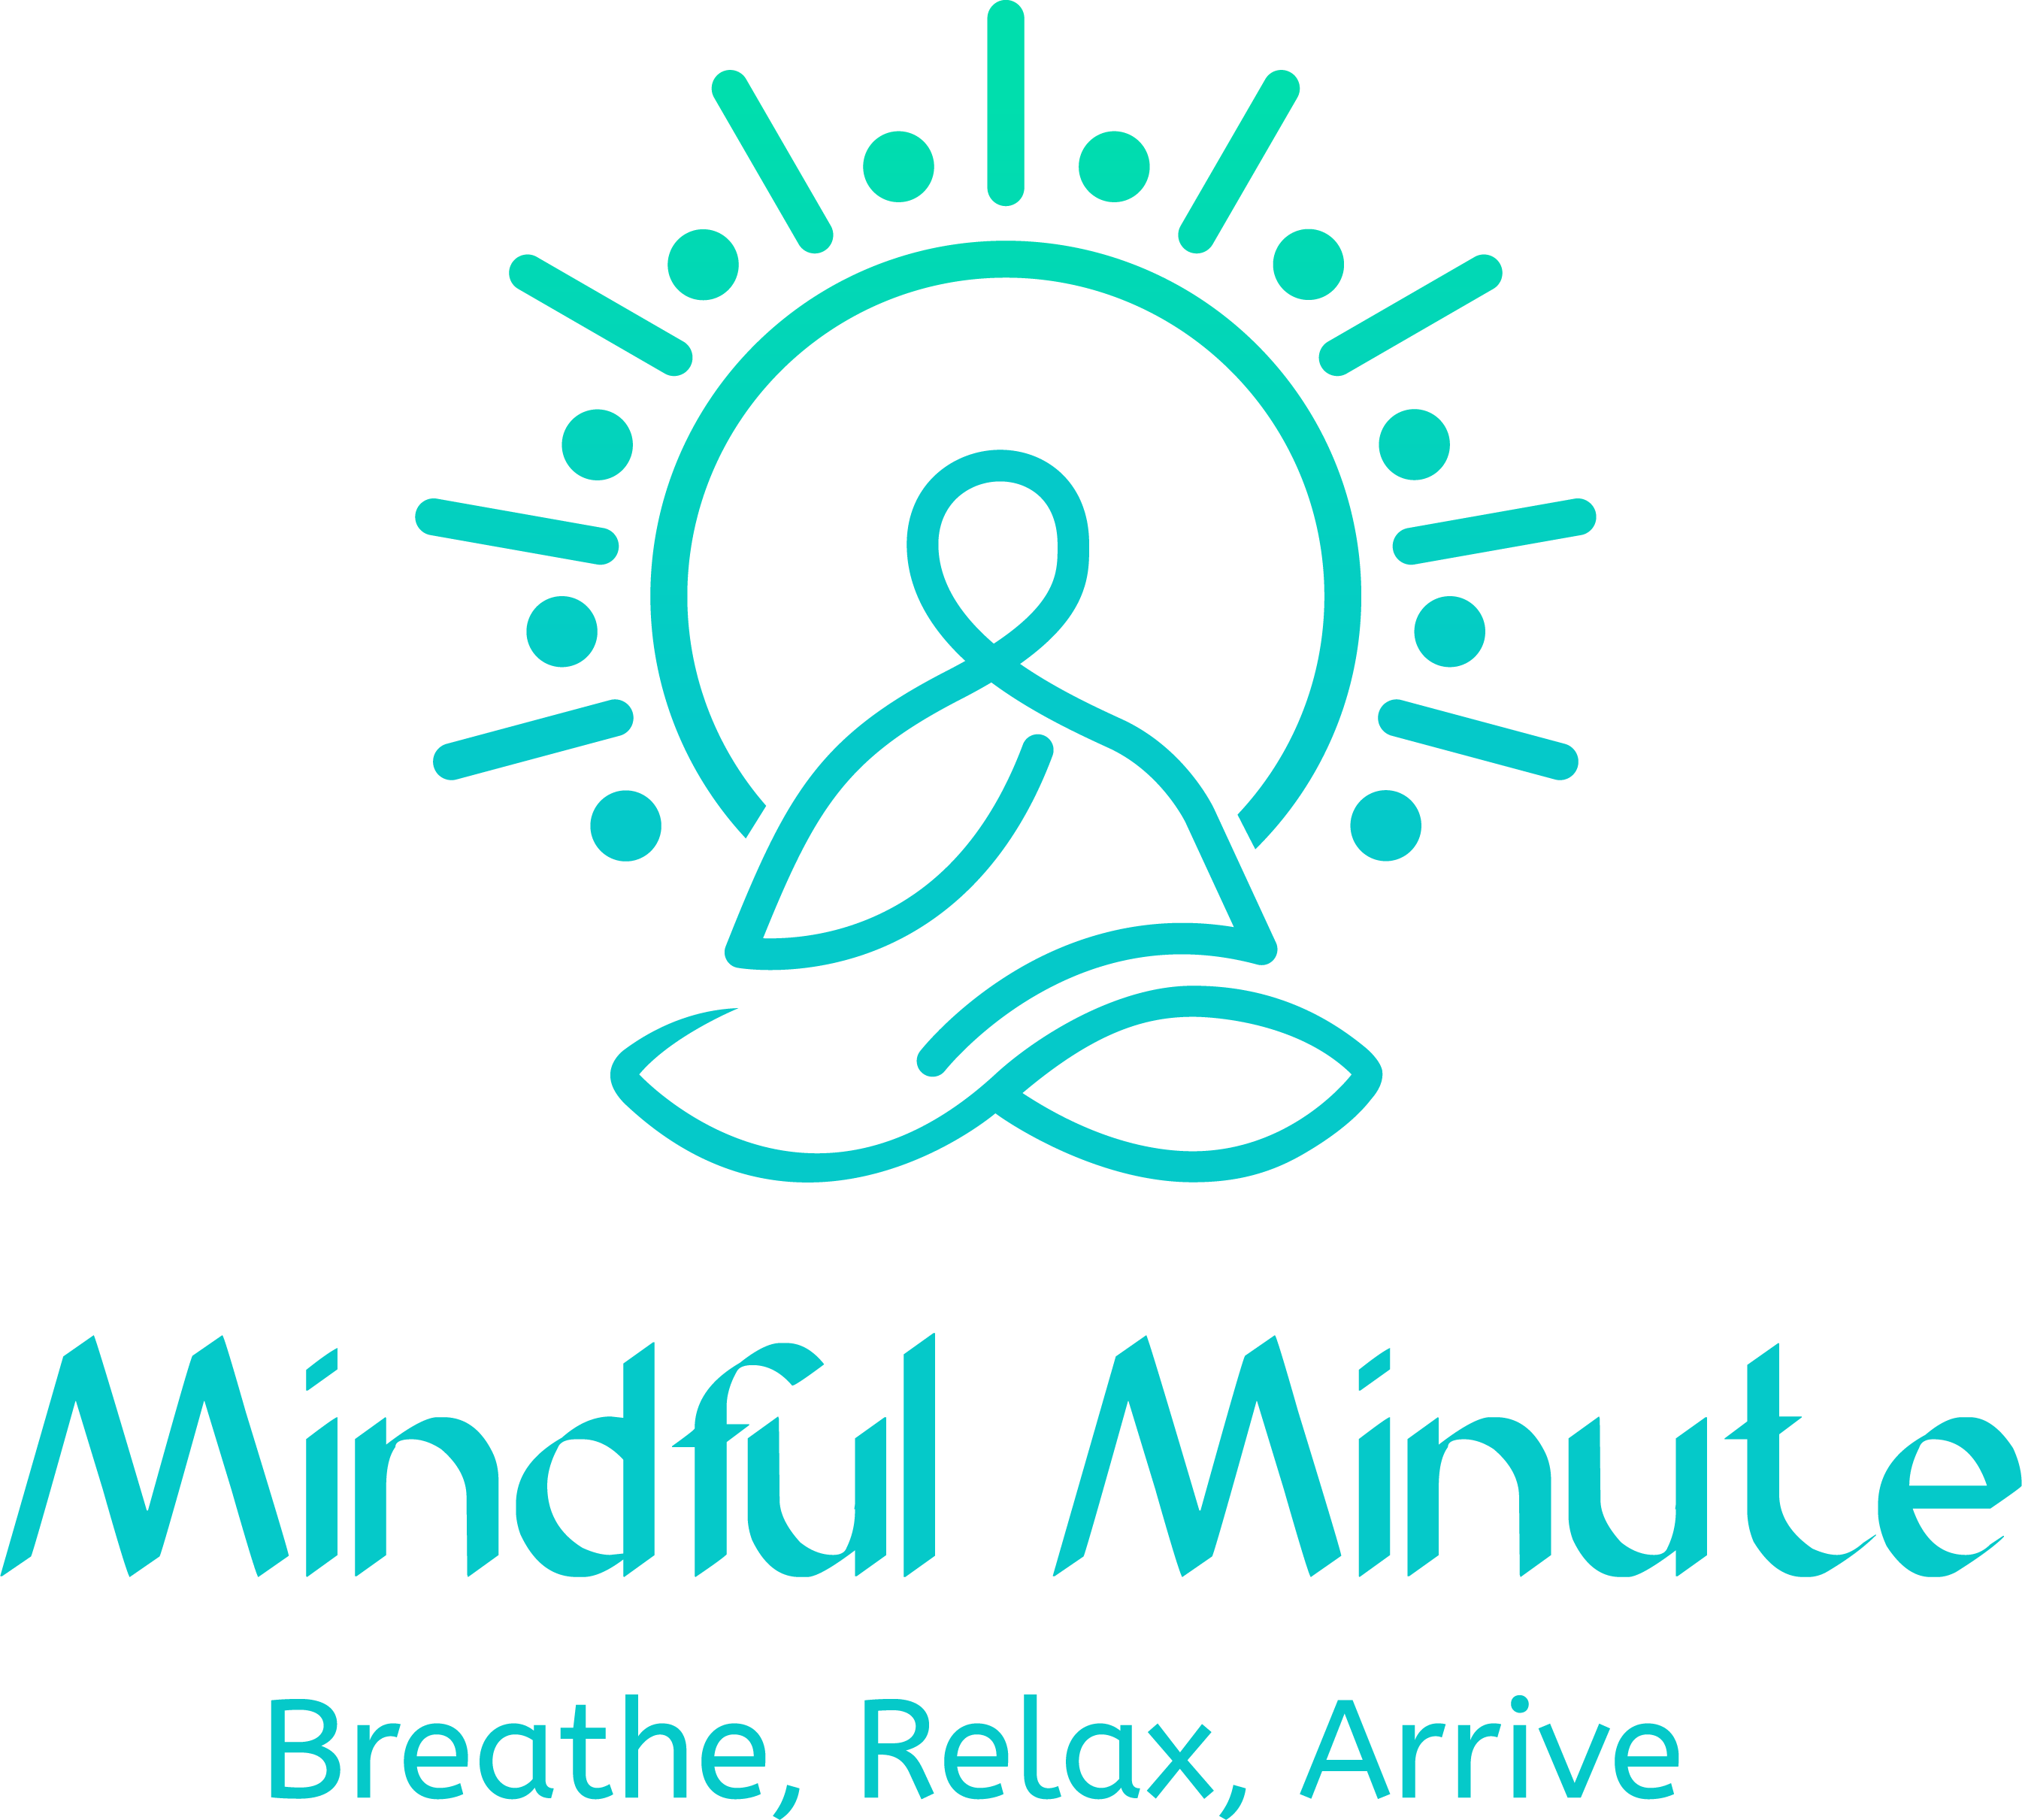 Mindful_Minute_Logo-02